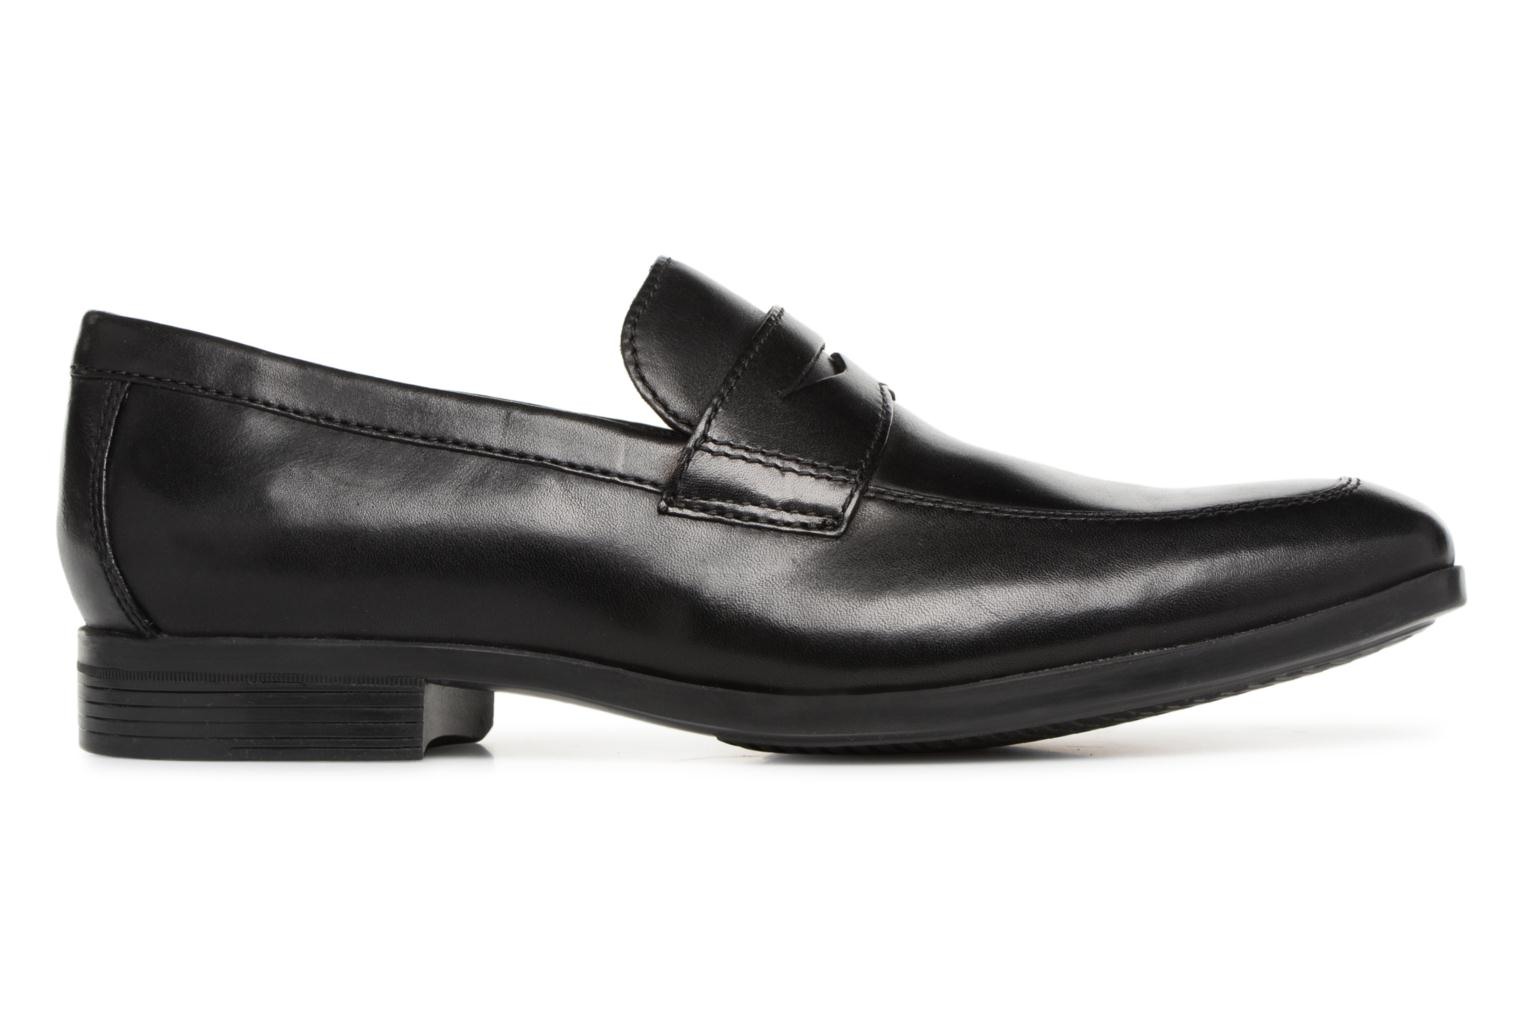 Conwell Conwell Black Way Black Leather Way Clarks Clarks Clarks Leather zSLqVpGUM